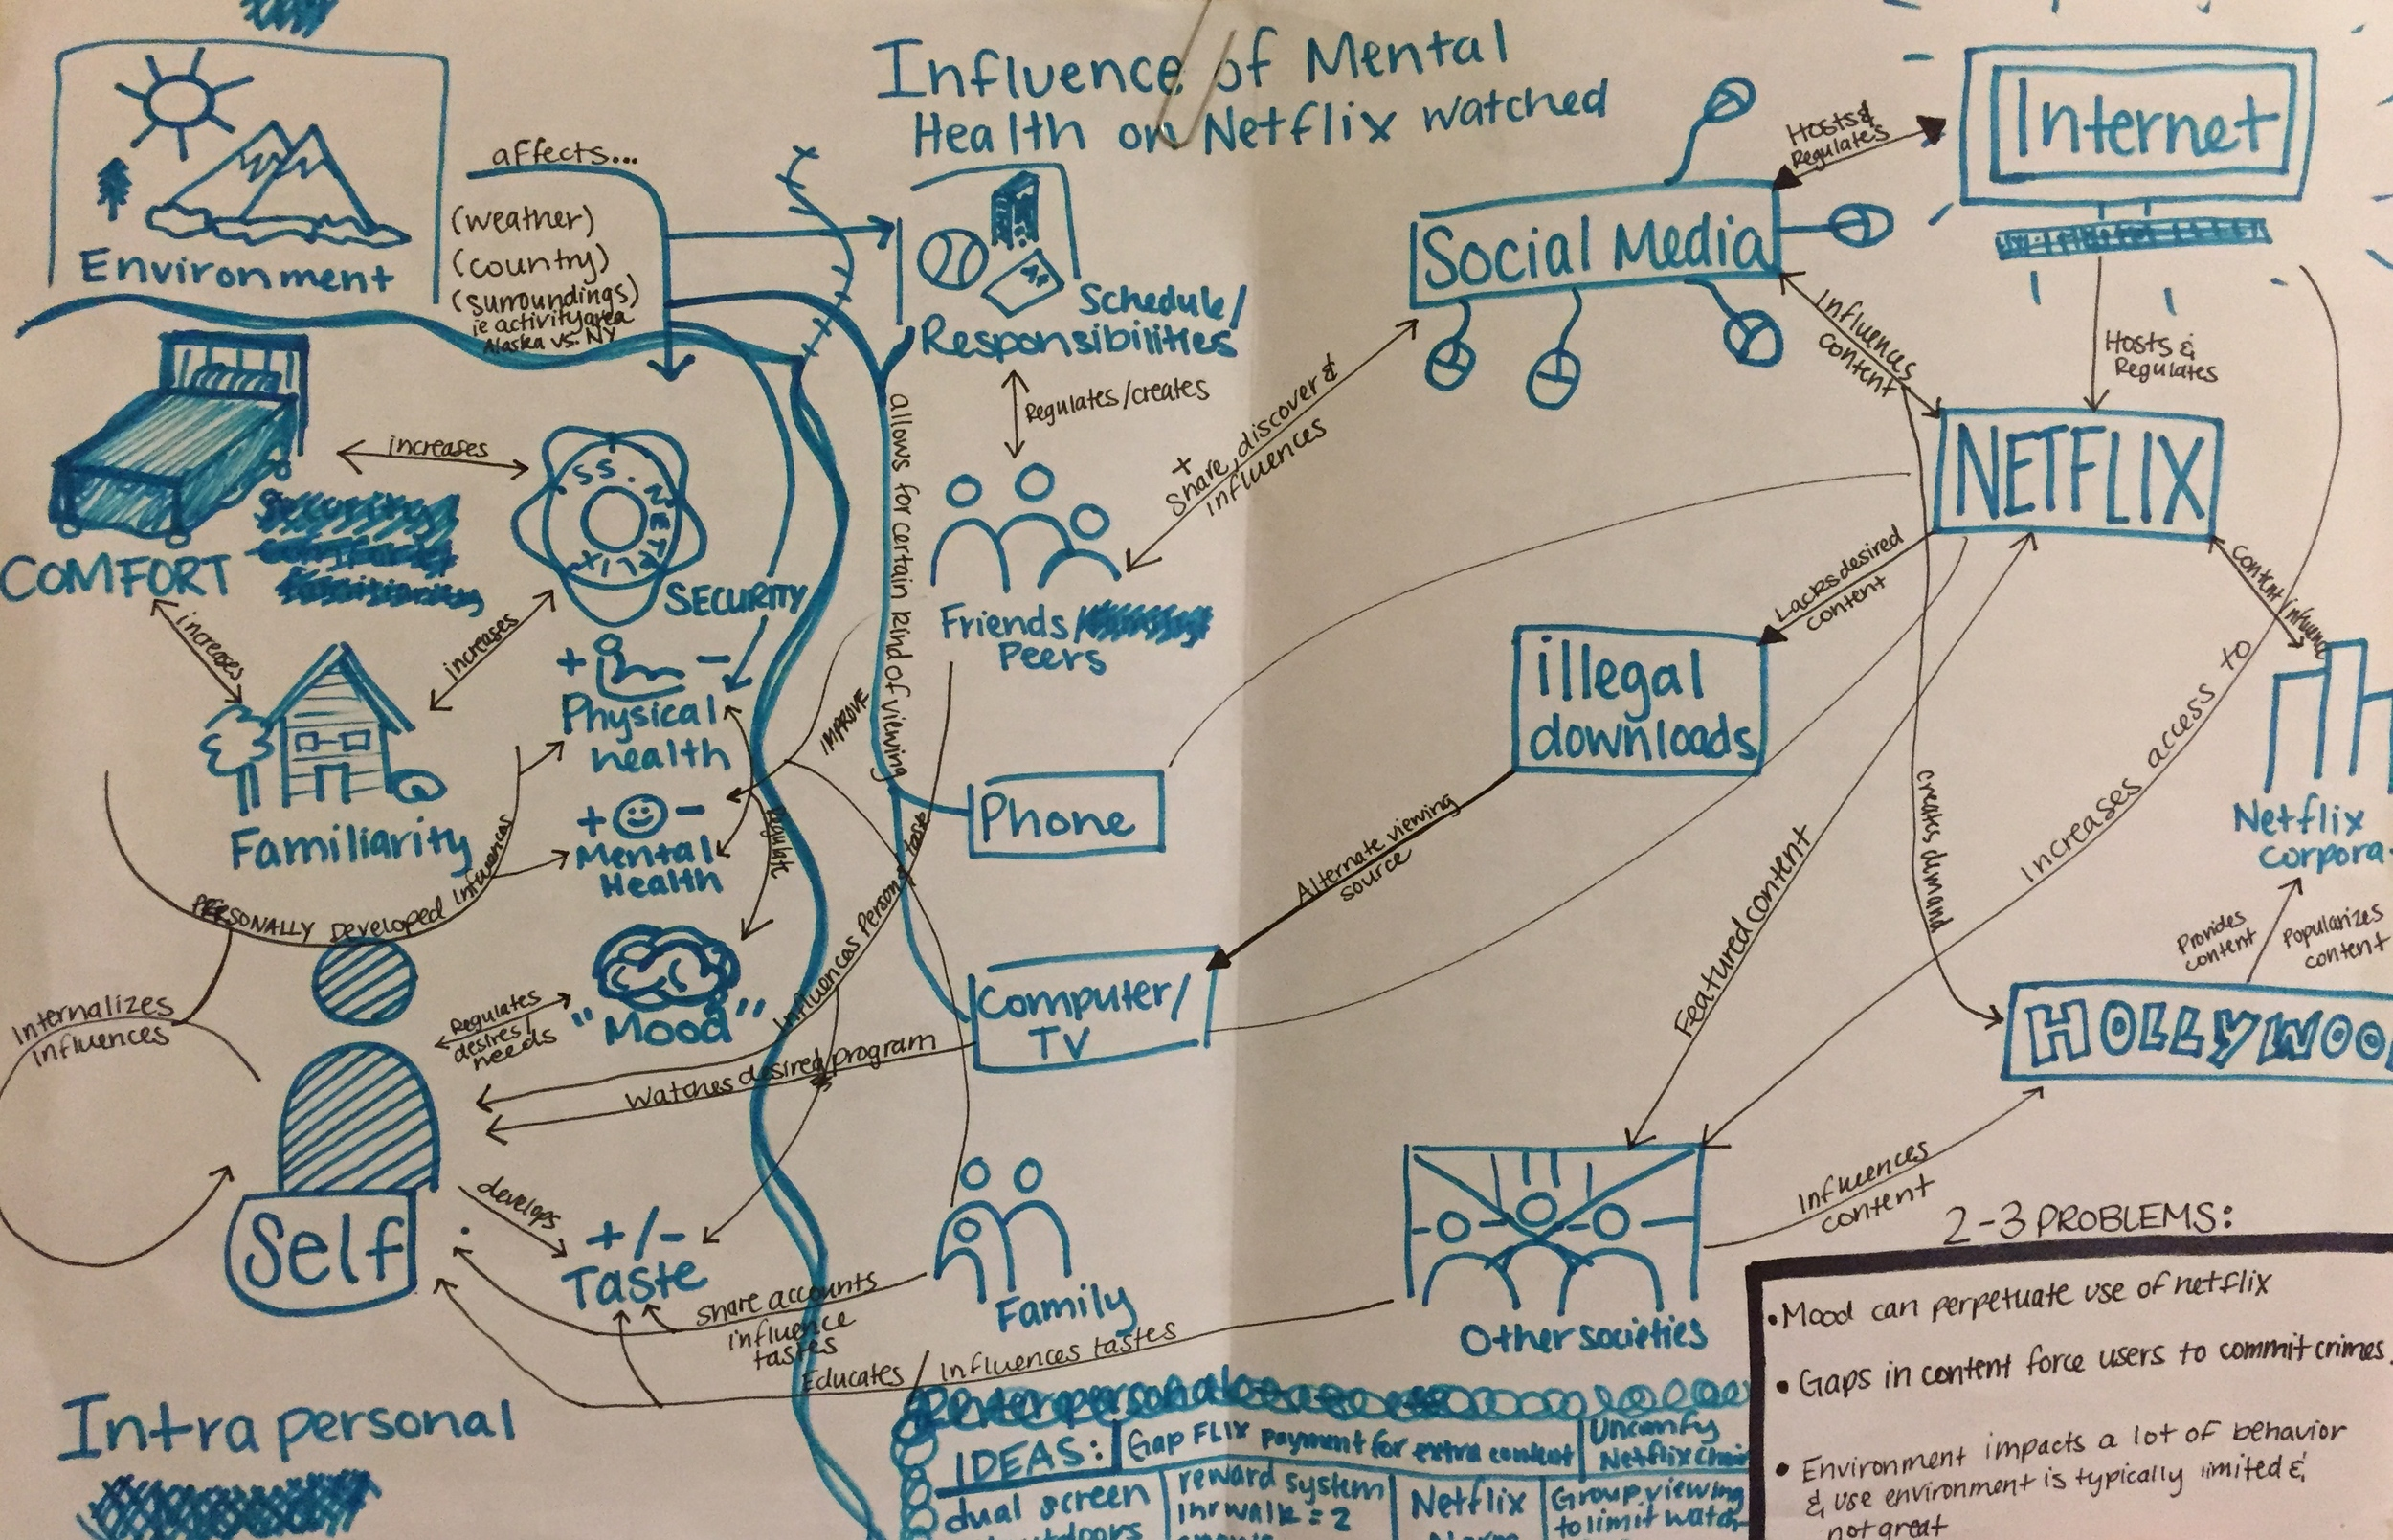 Mapping exercise: The Influence of Netflix on Mental health